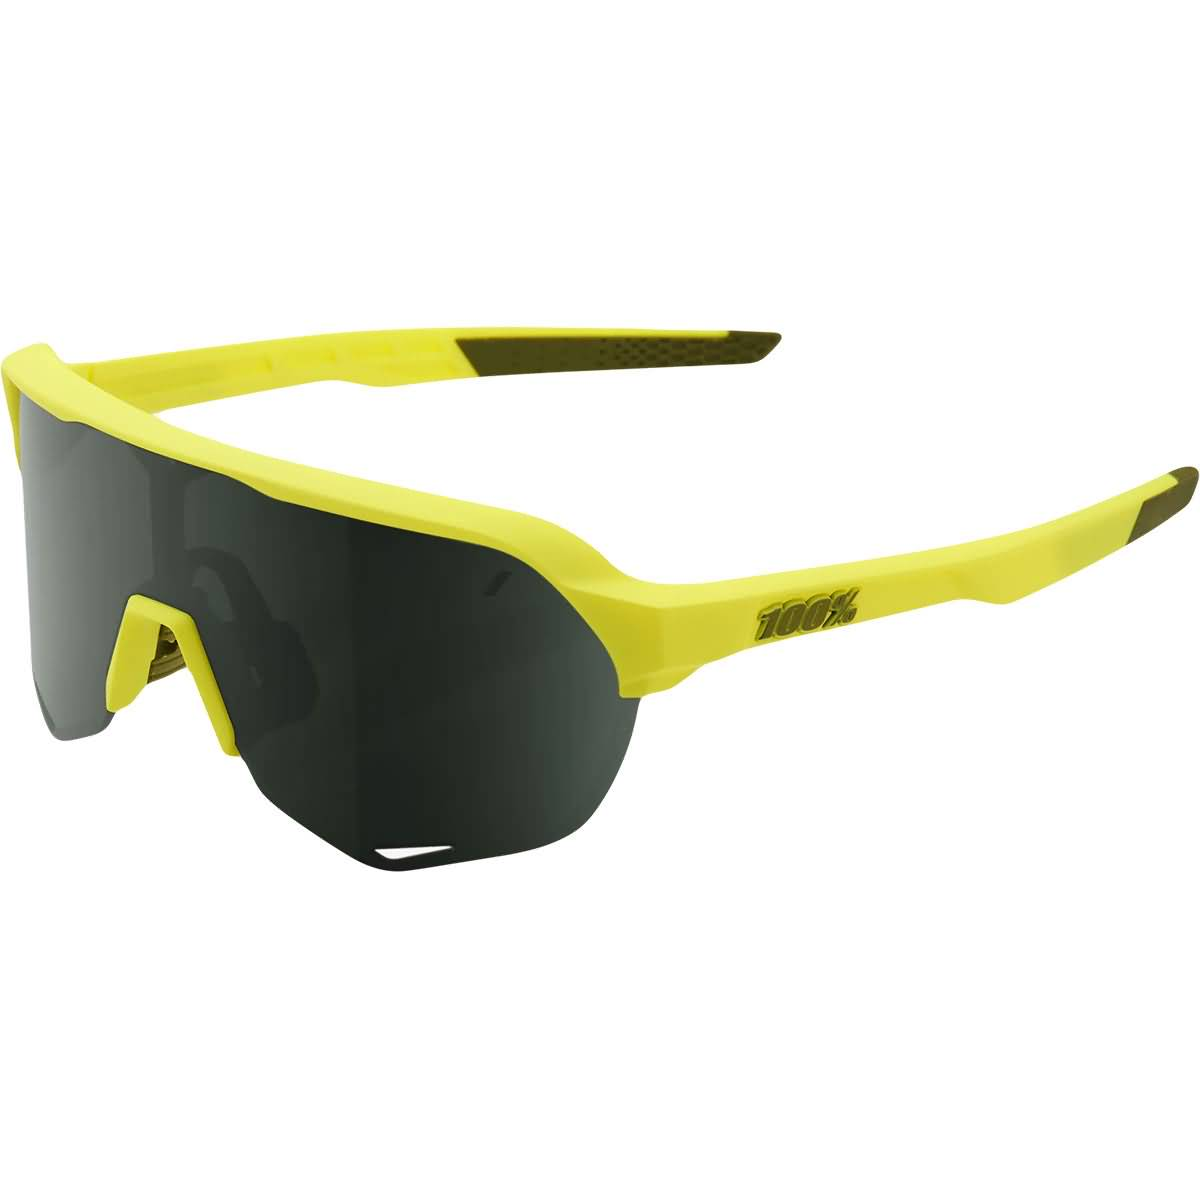 100% S2 Men's Sports Sunglasses-955731-tr